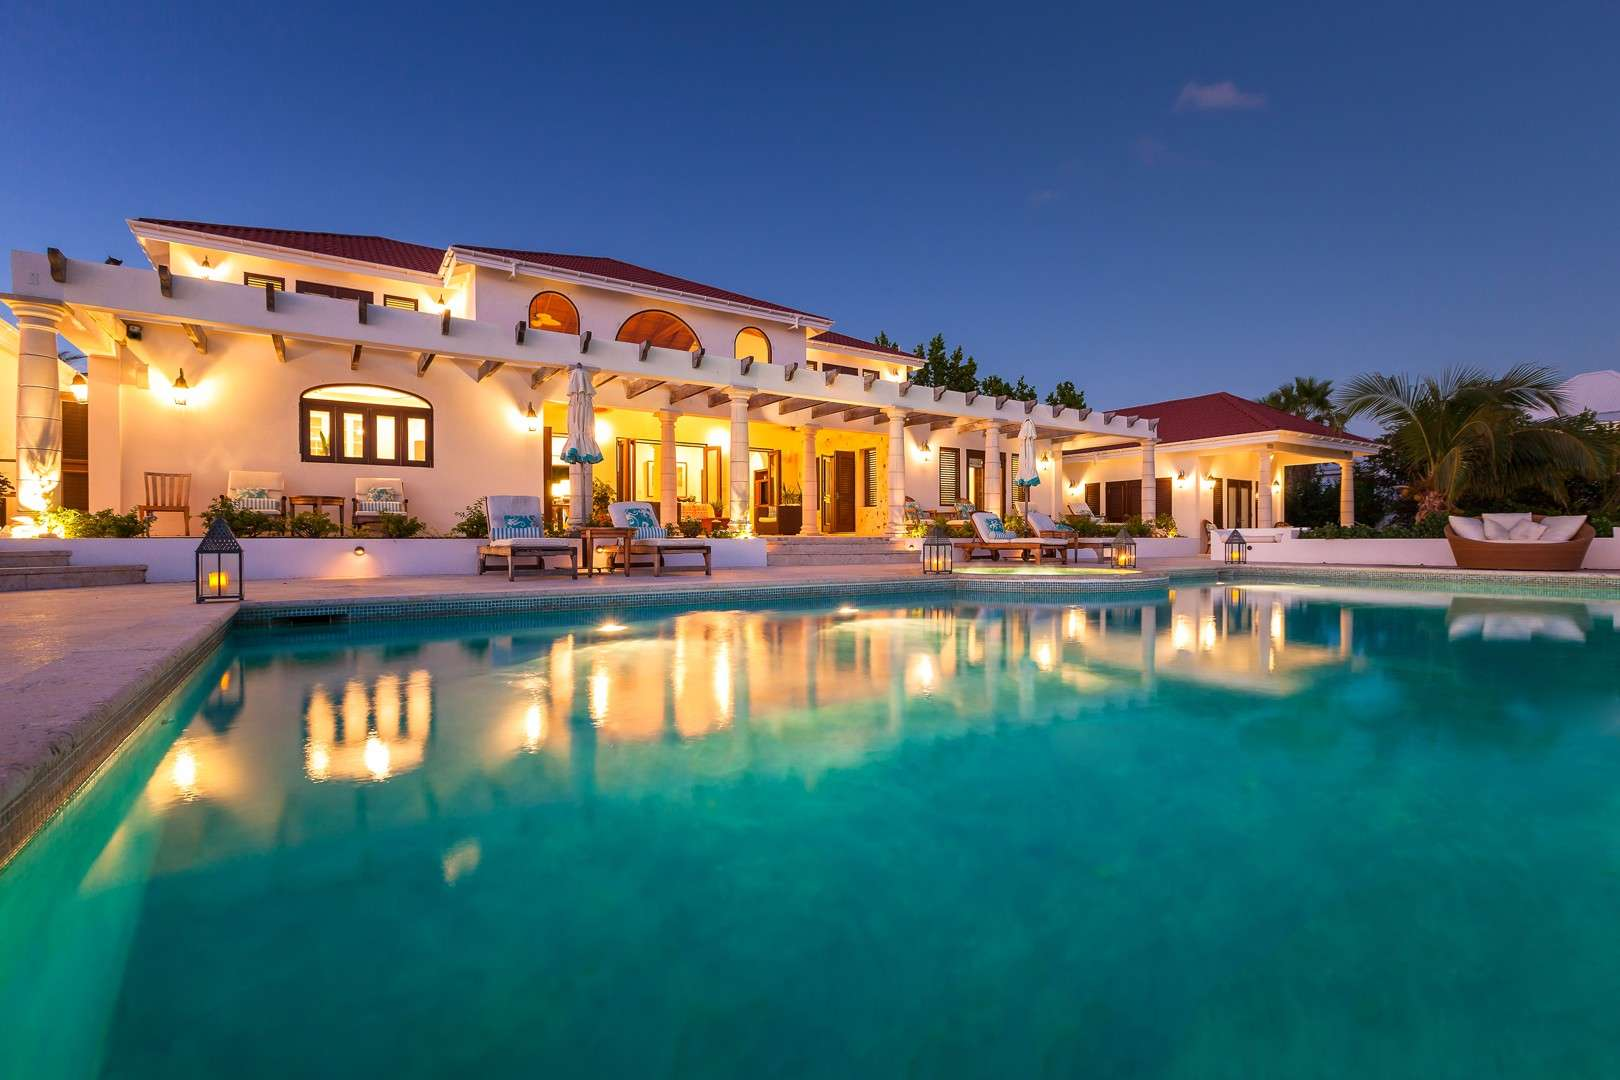 Luxury villa rentals caribbean - Anguilla - Blowing point - Villa Alegria - Image 1/18